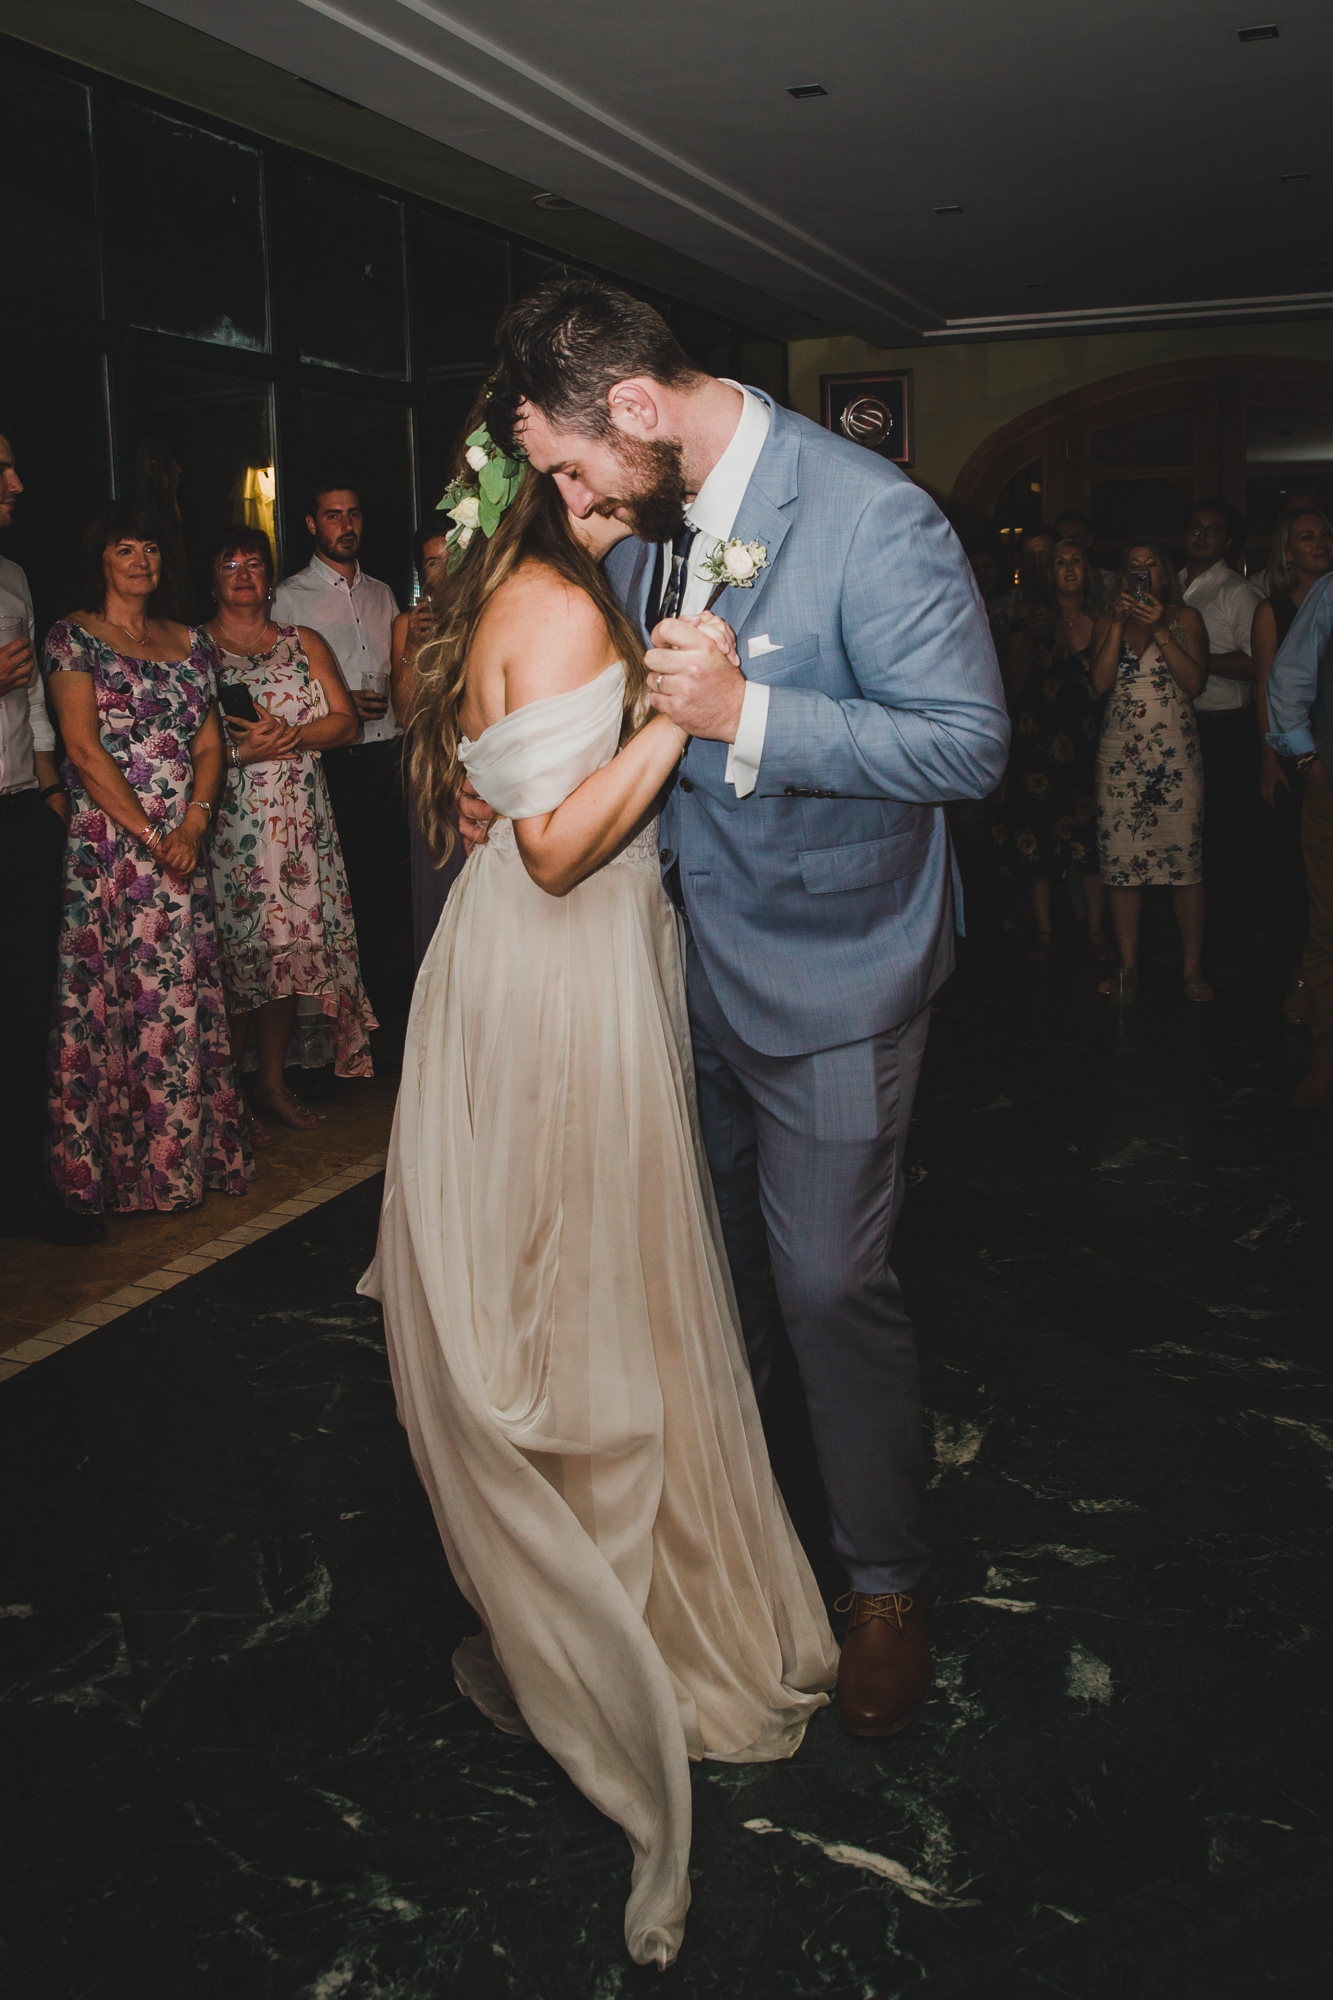 bride and groom dance surrounded by guests at Hotel Les Rotes wedding in Spain